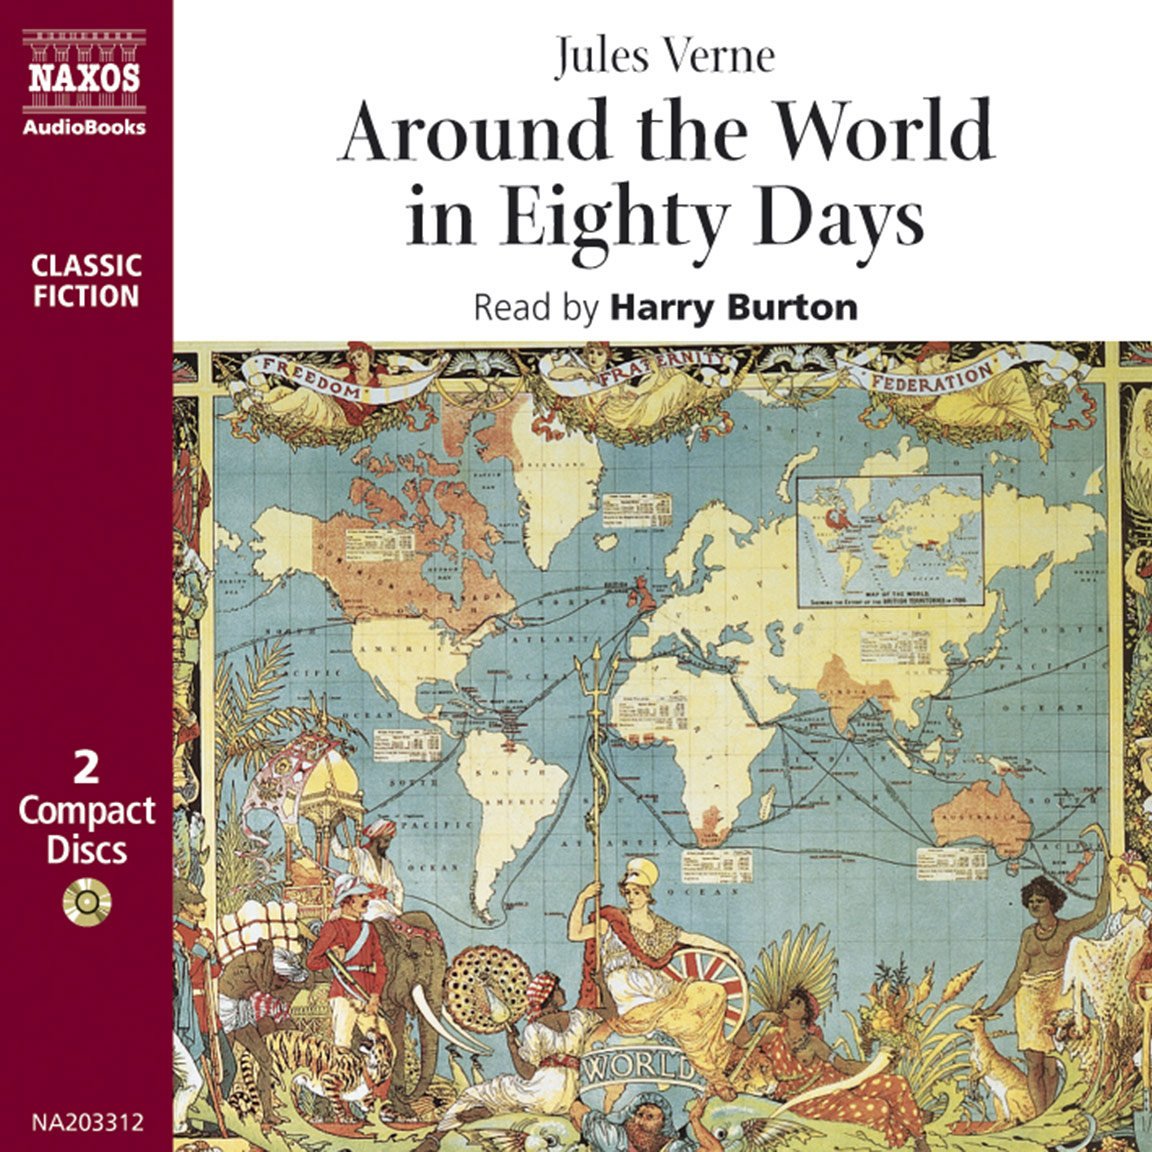 Around the World in Eighty Days (abridged)